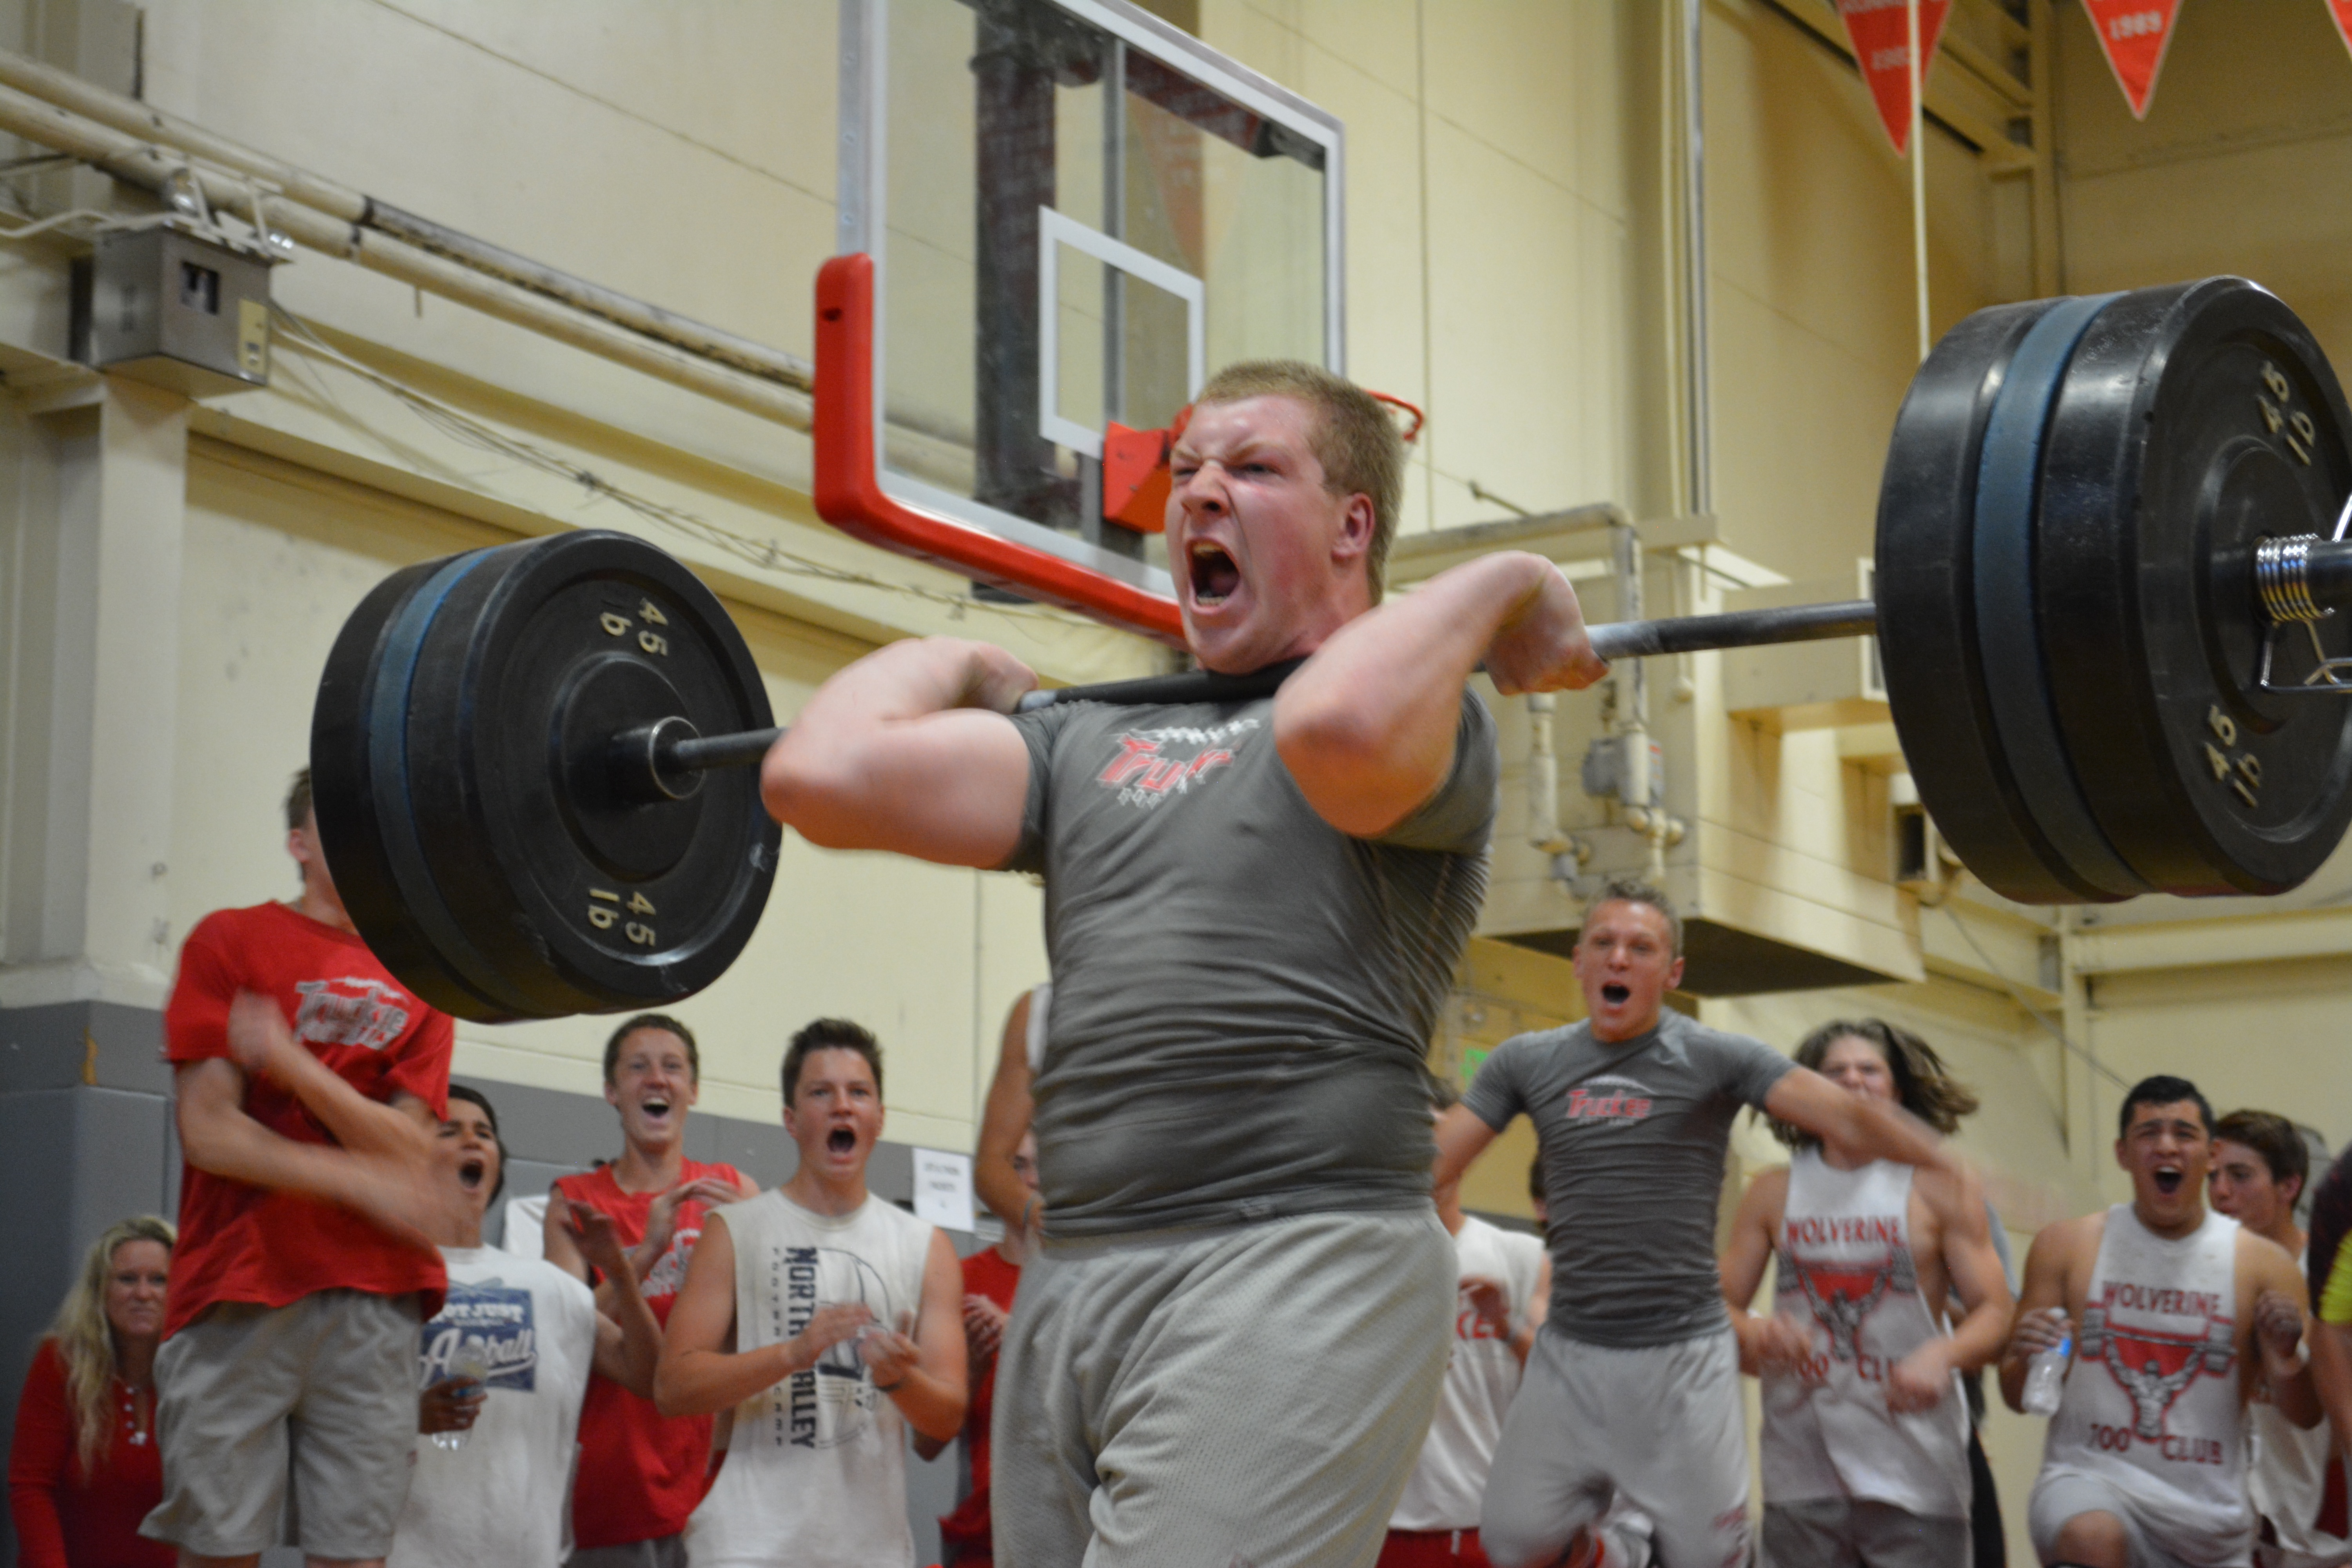 Swalander took down the Truckee Lift a Thon record with a 315 lb. clean!